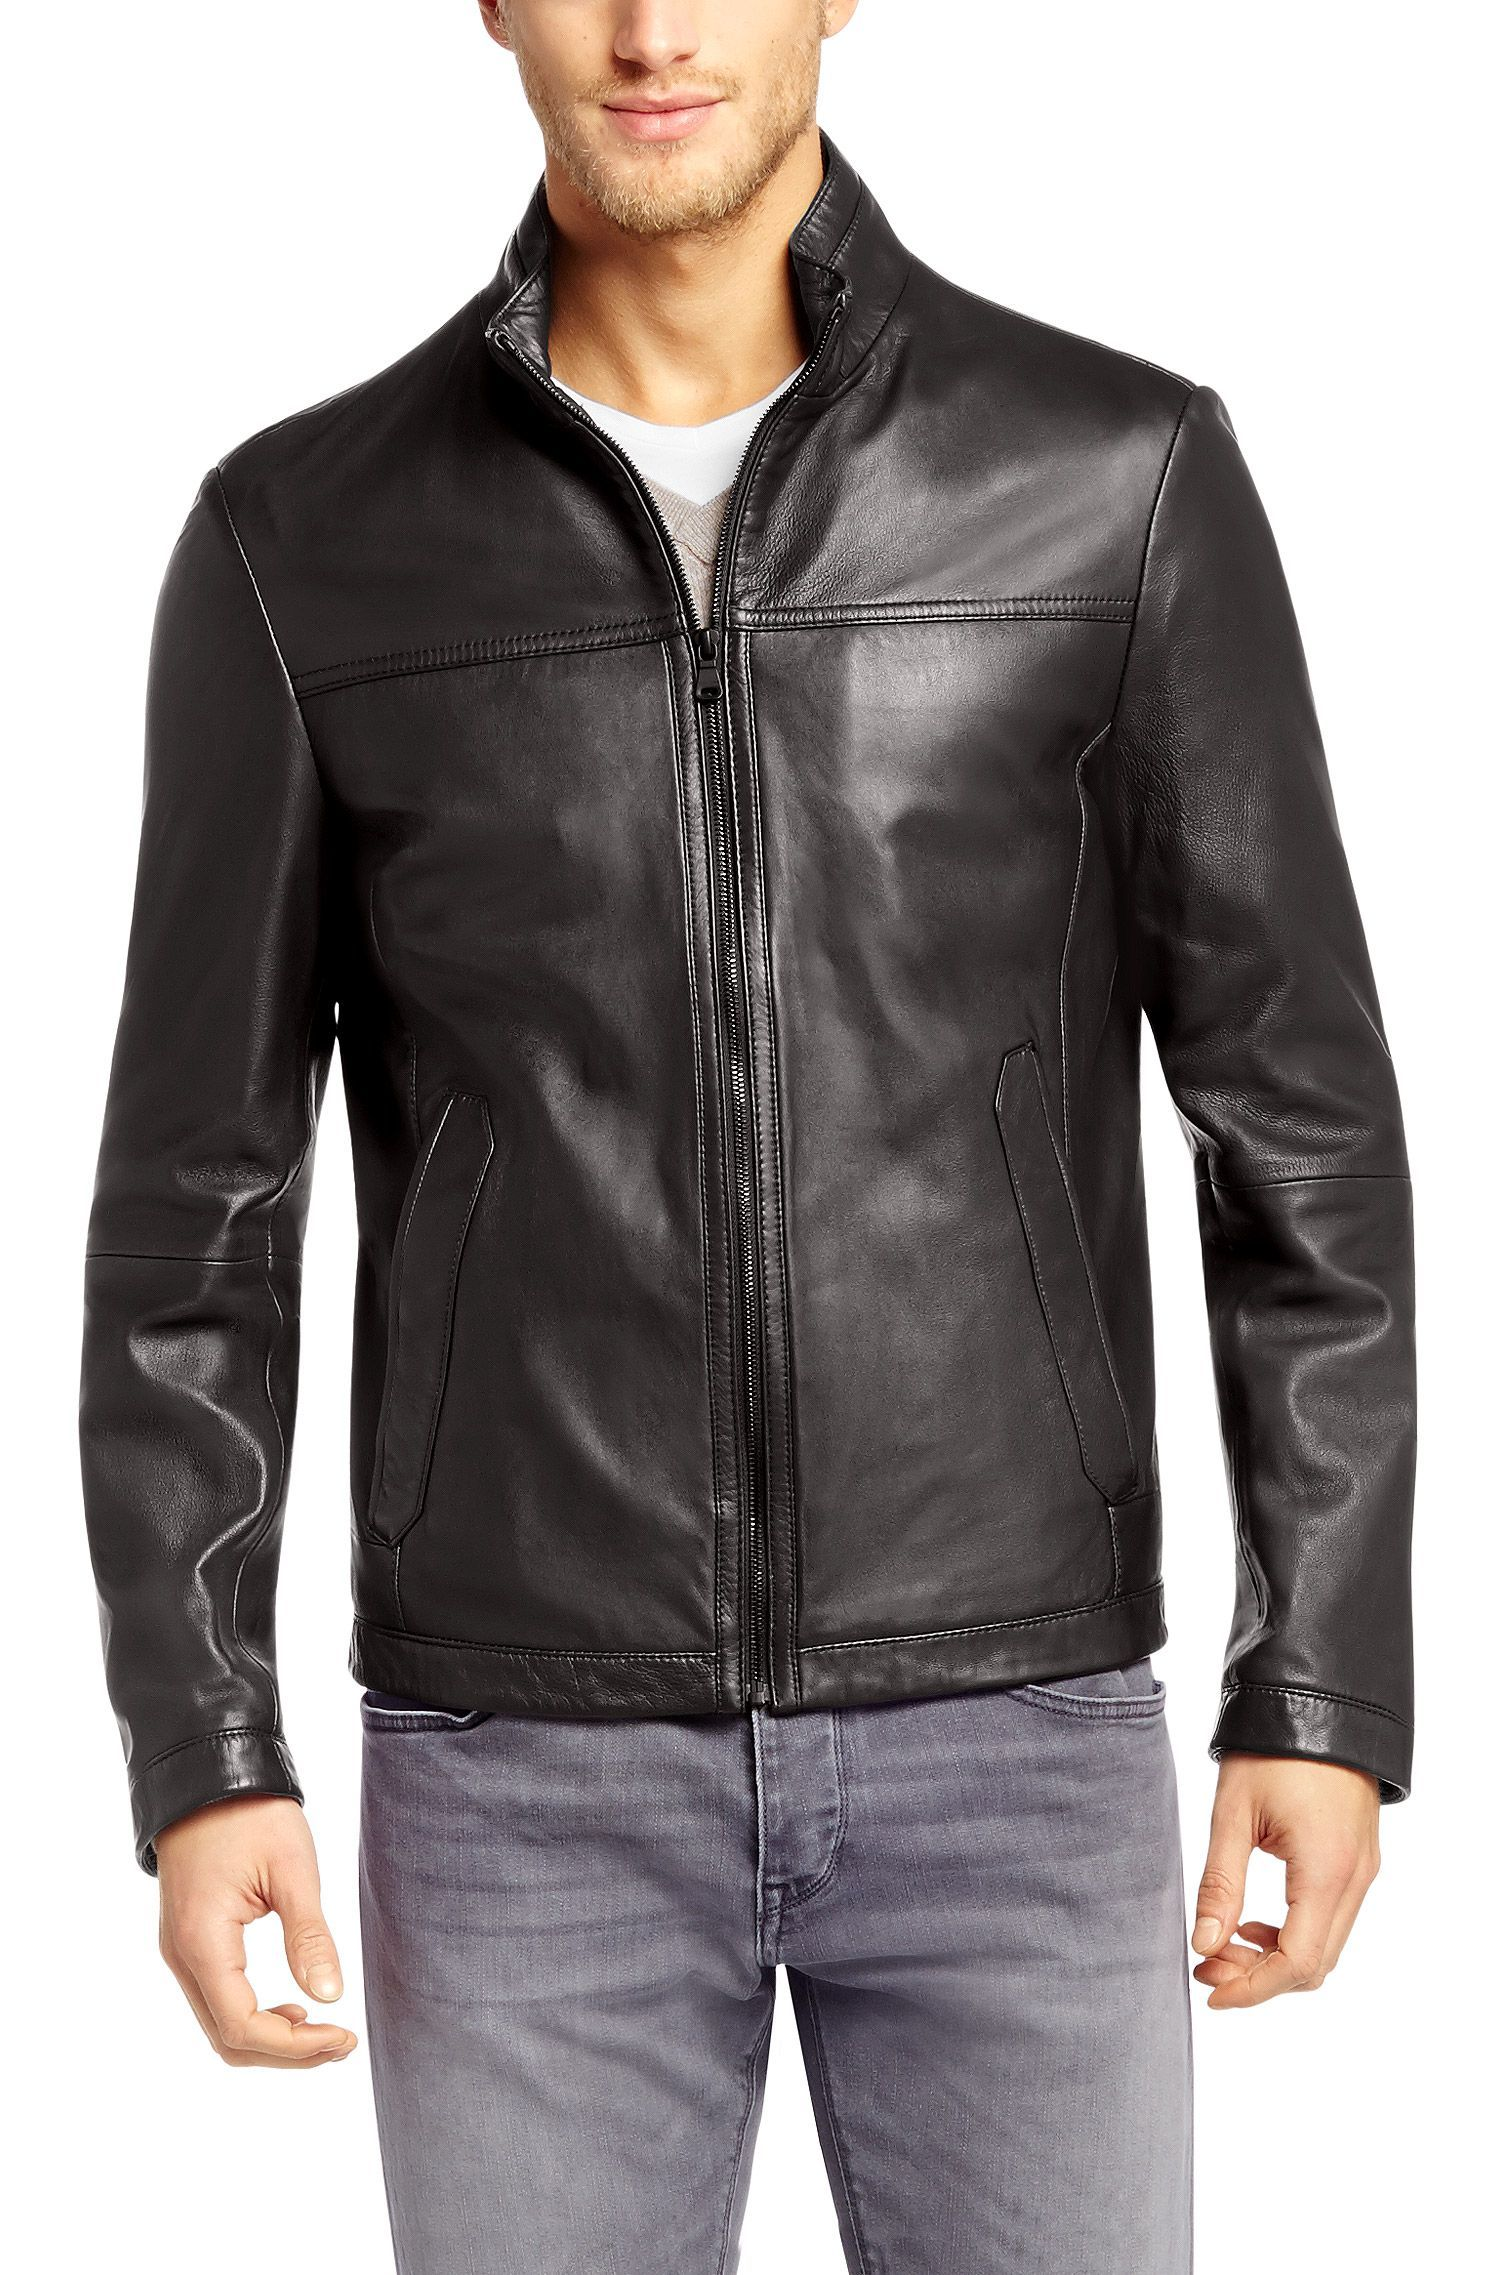 Hugo Boss Boss leather jacket, Leather jacket, Jackets